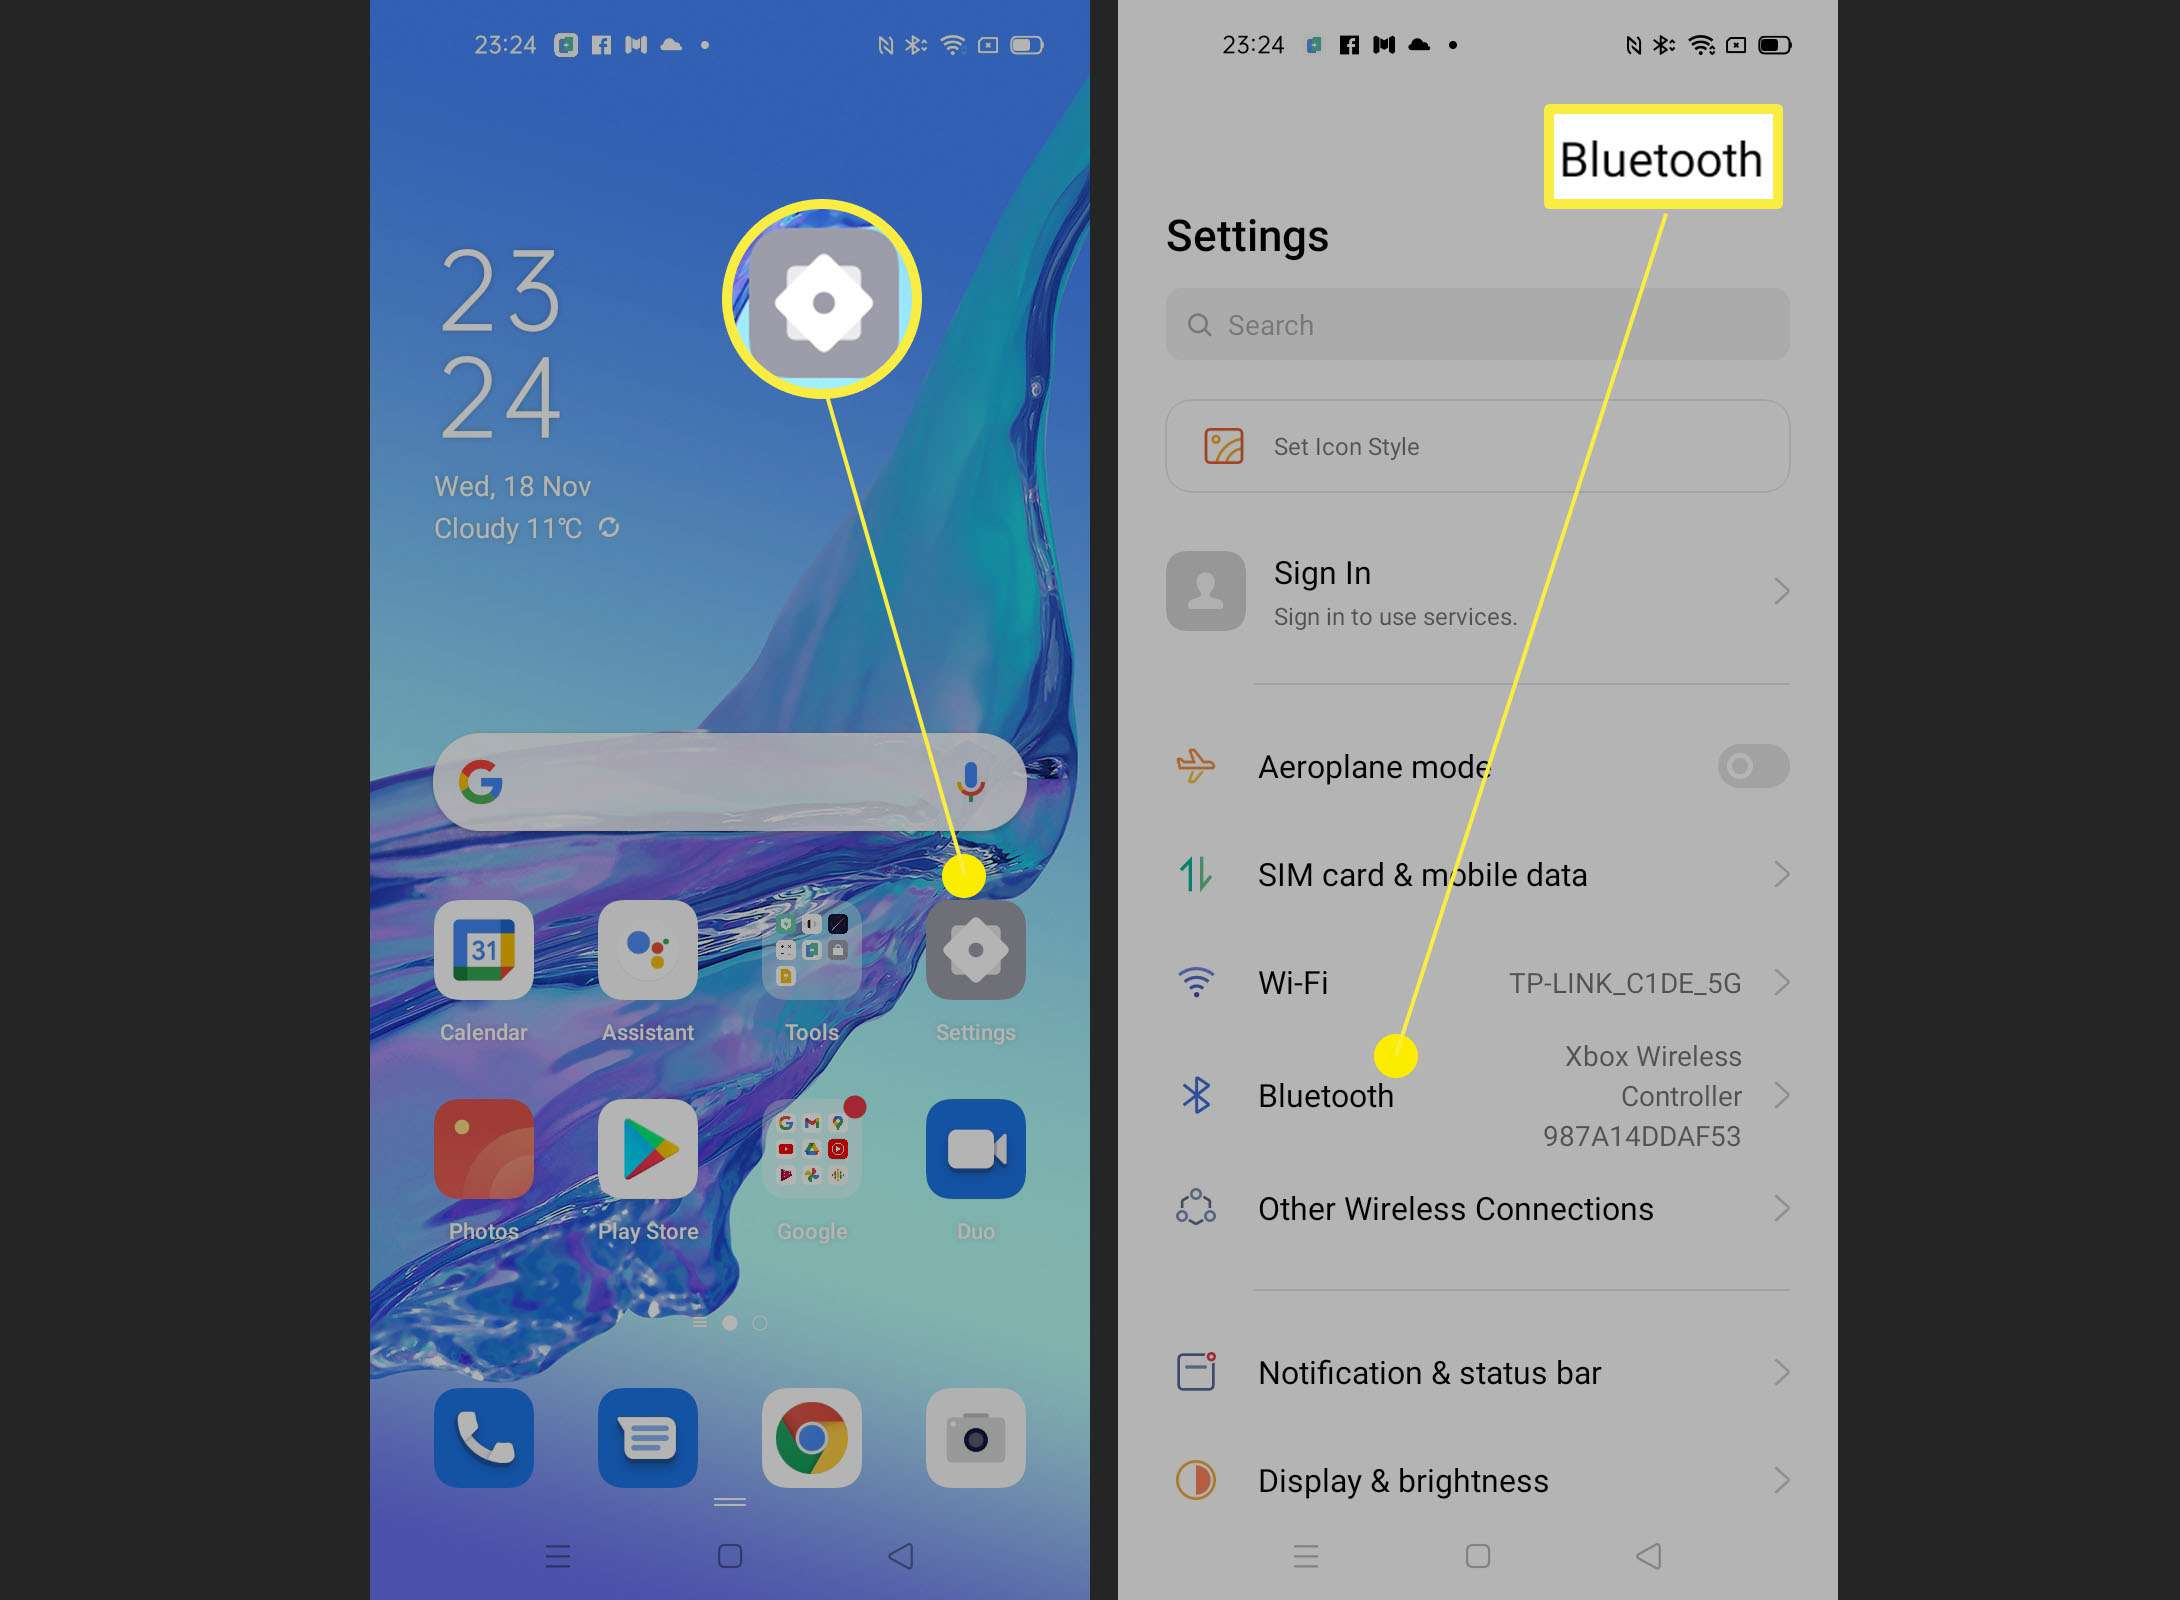 Steps on an Android phone for finding Bluetooth settings